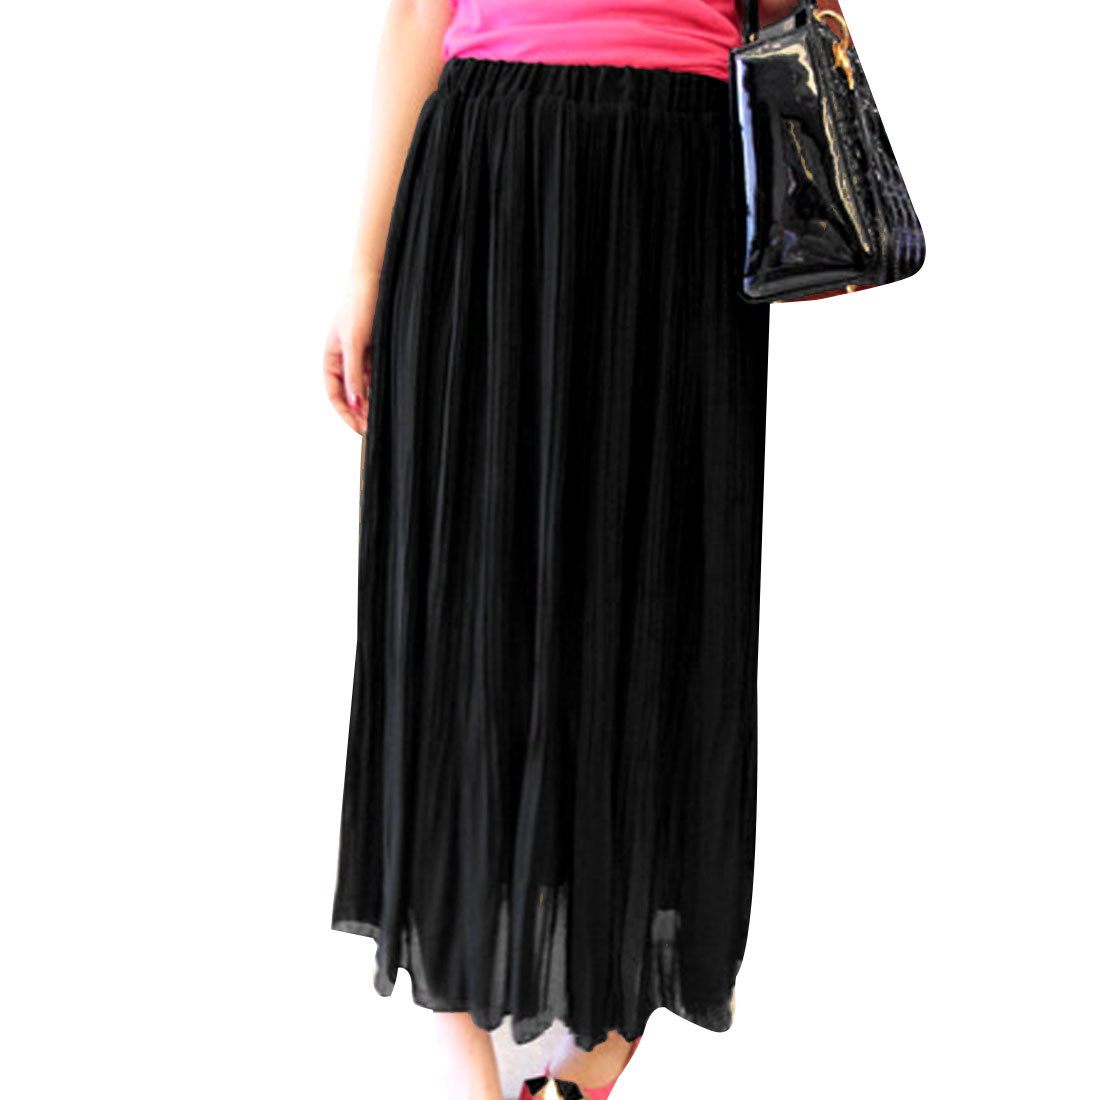 Ladies Black Elastic Waist Solid Color Summer Chiffon Skirt XS